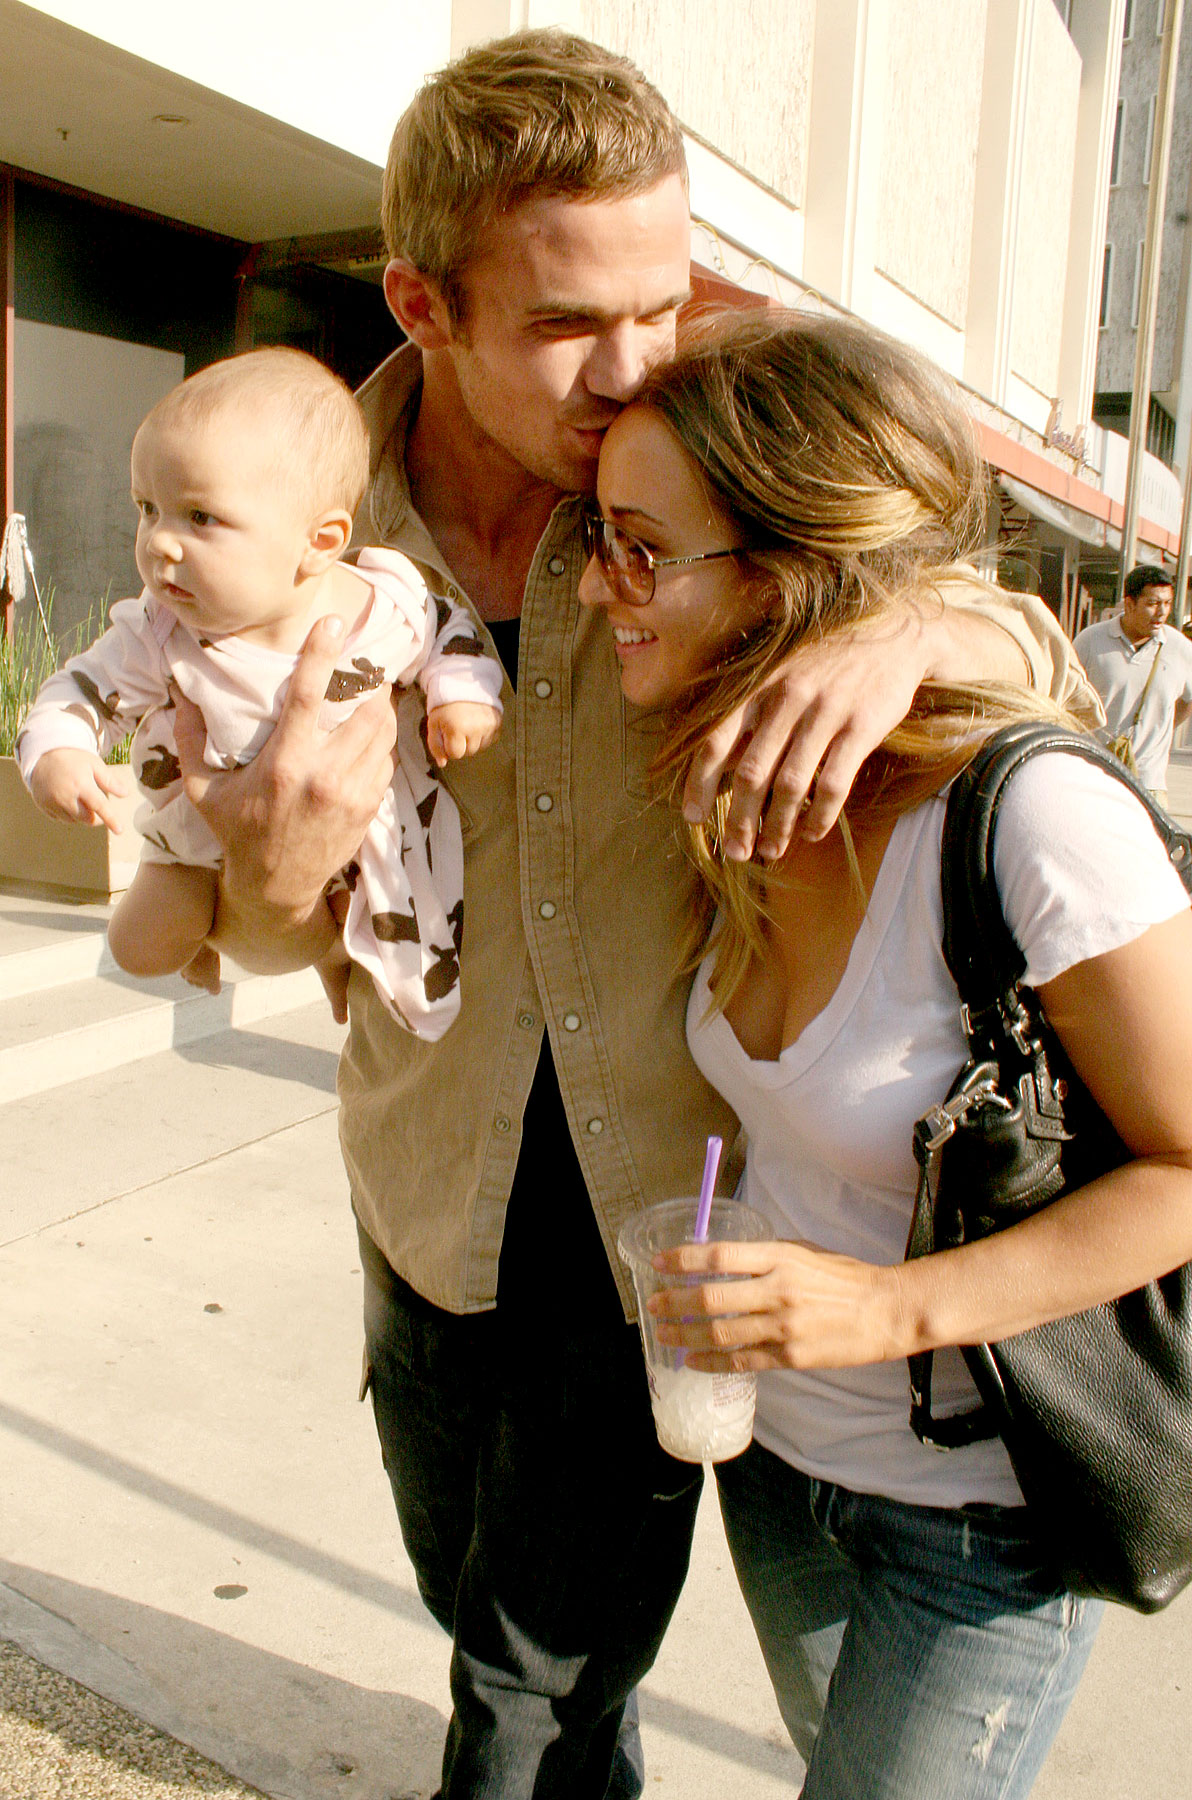 PHOTO GALLERY: Cam Gigandet Shows Off His Family